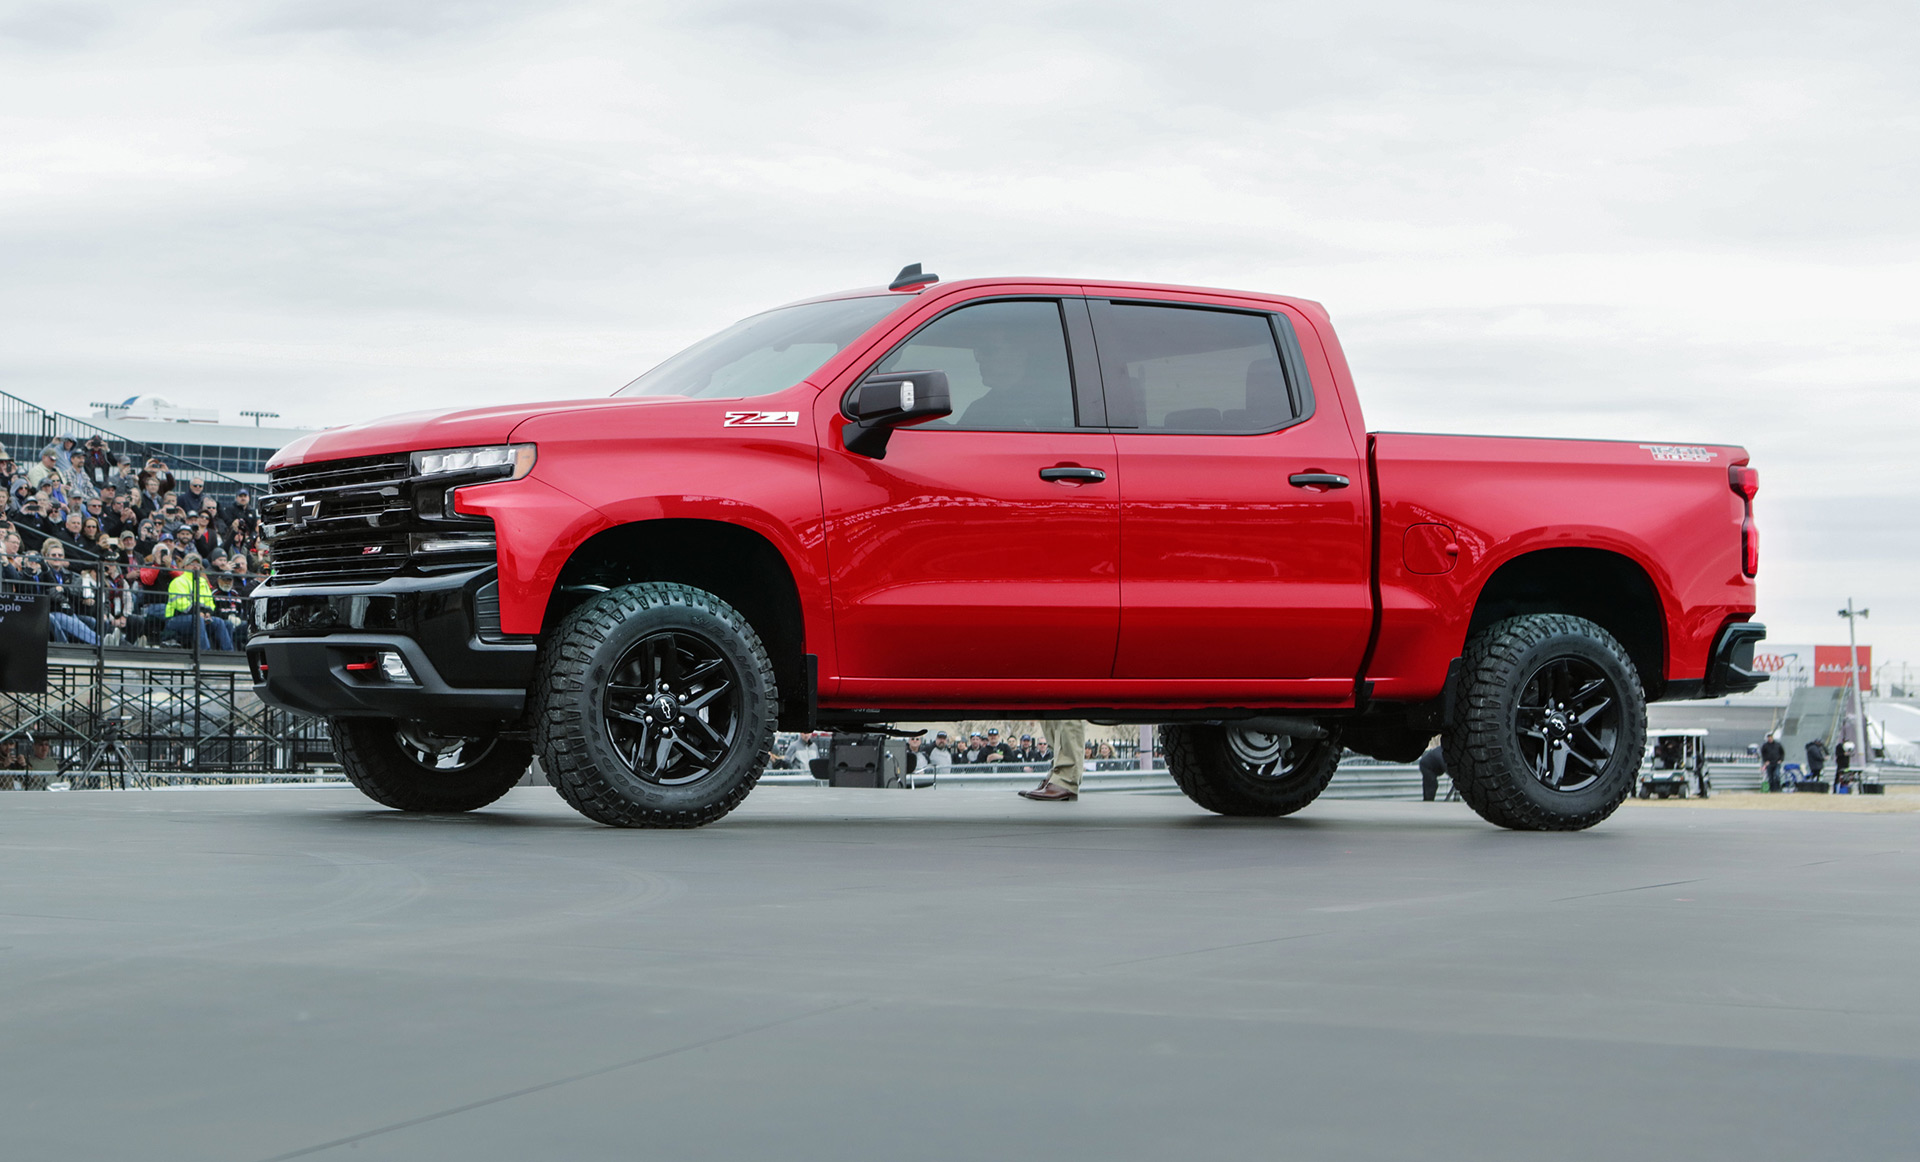 2019 Chevrolet Silverado 1500 Trail Boss Takes Bowtie Brand To New